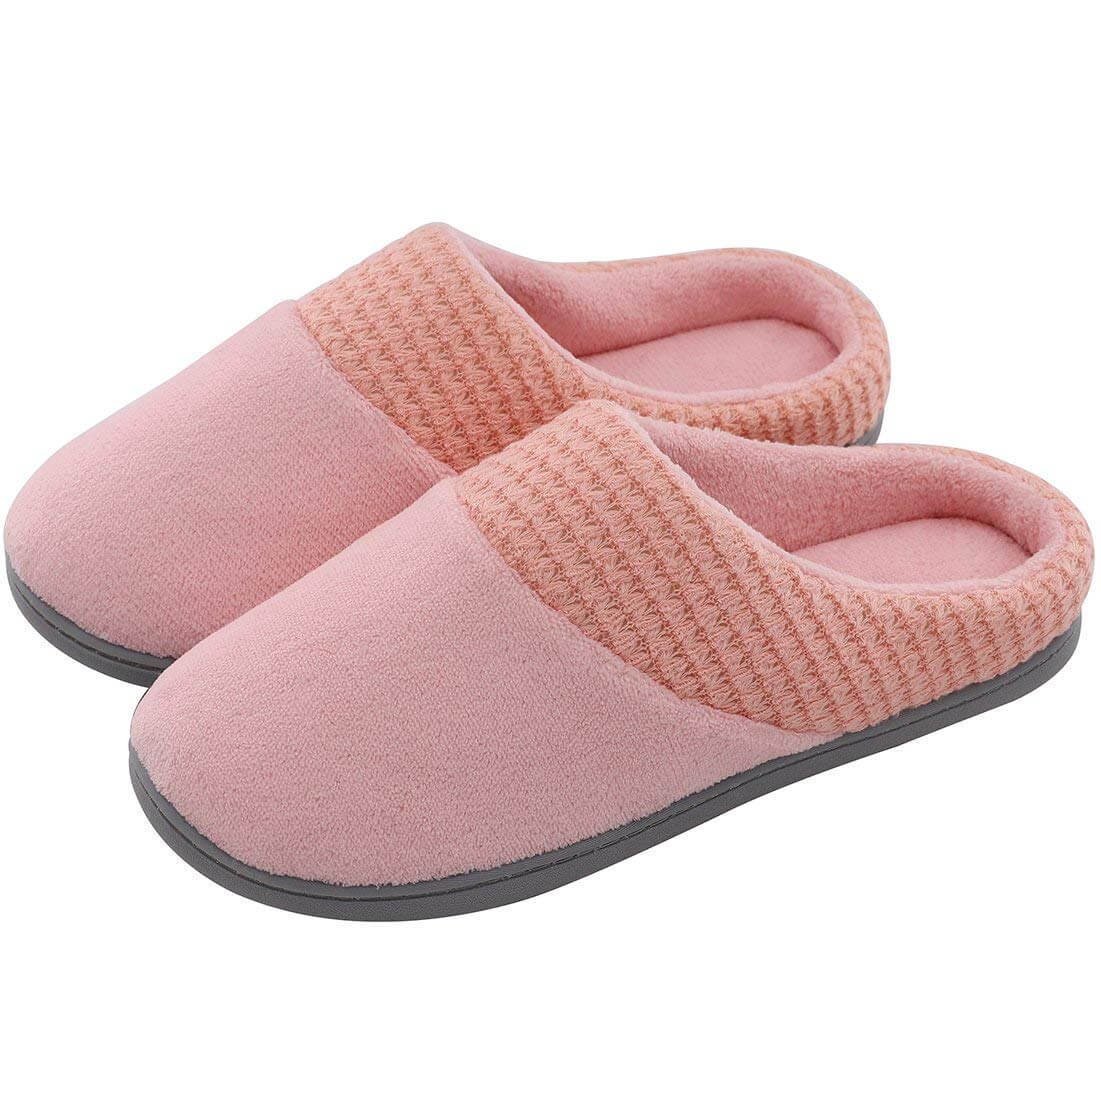 Womens Memory Foam Slippers Pink